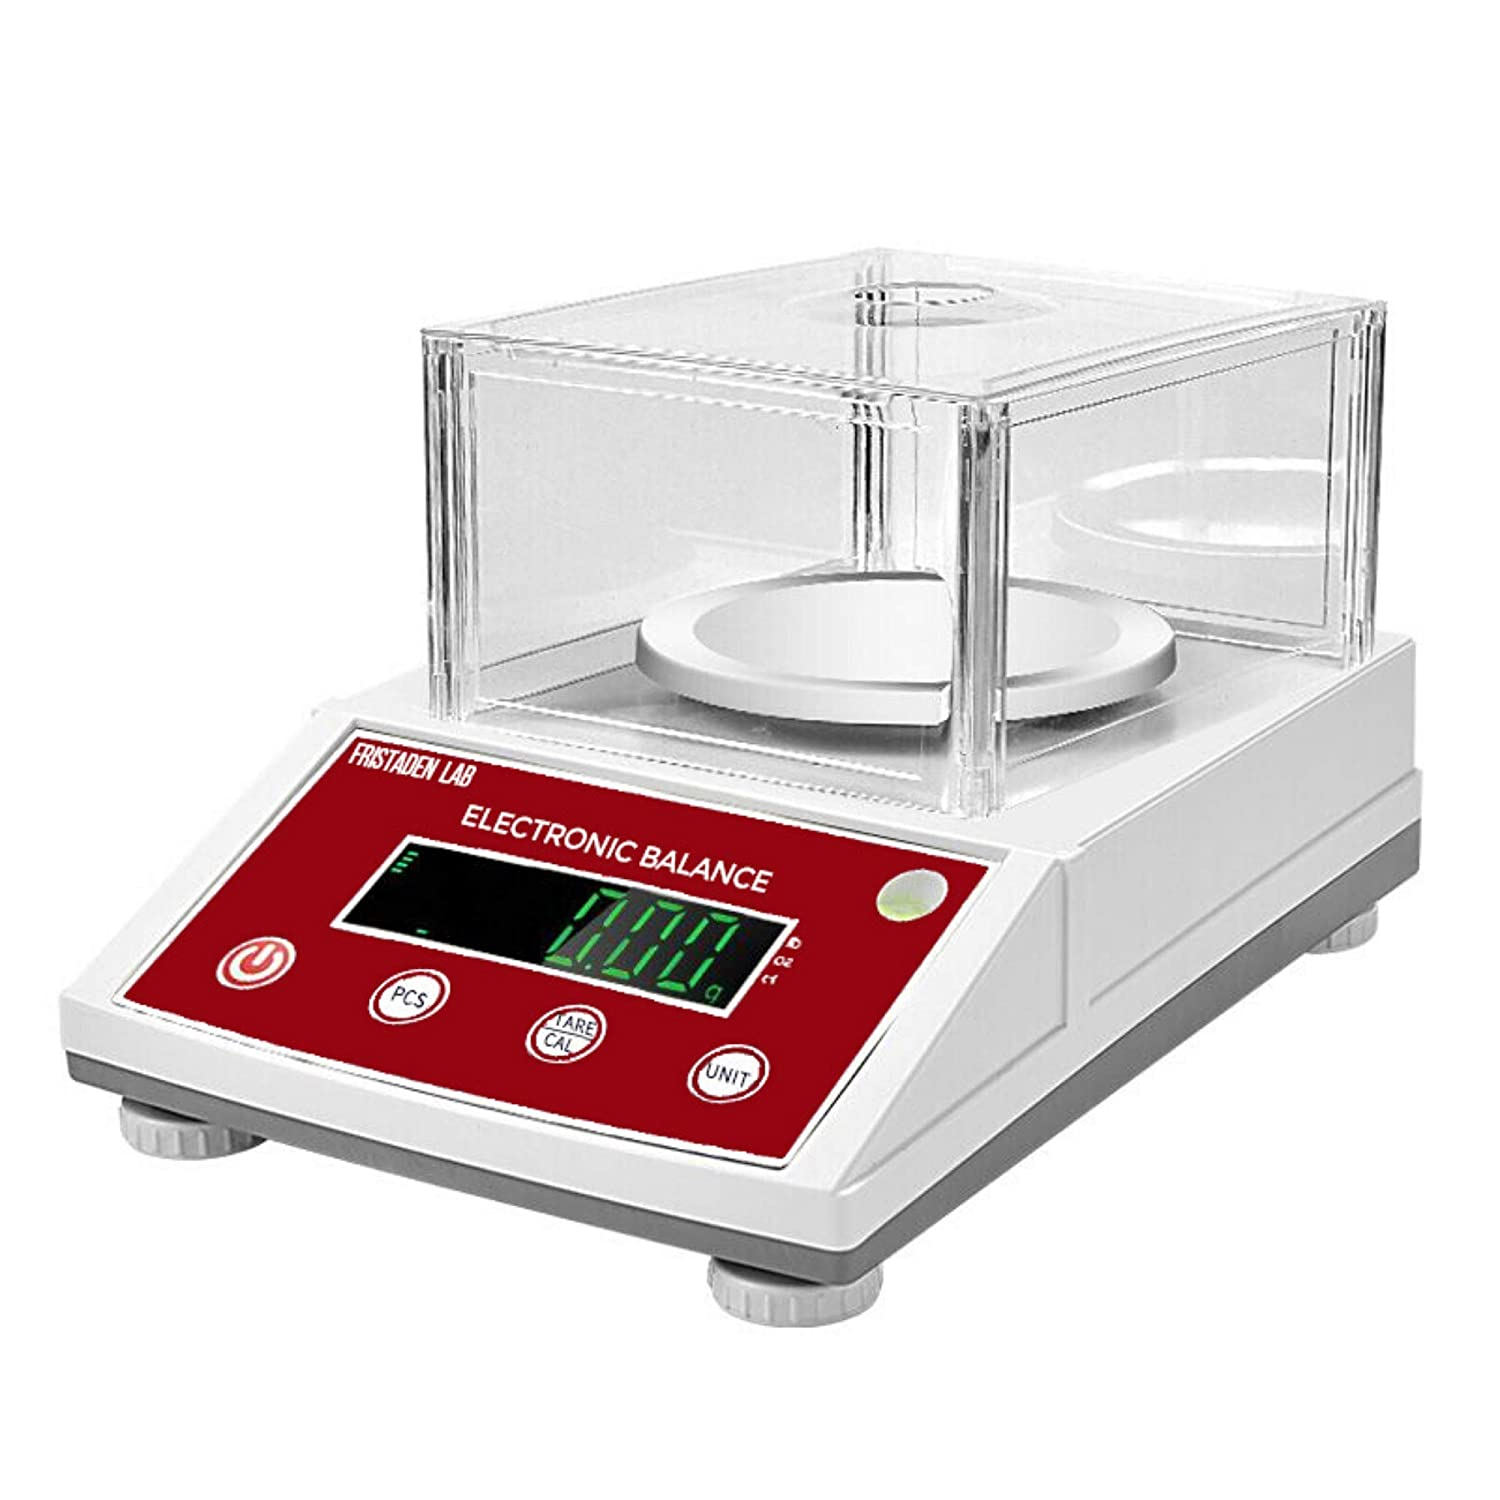 American Fristaden Lab Analytical Precision Scale 2000g x 0.01g   01 Gram Scale Weighs Grams, Ounces, Pounds, Carats   High Accuracy Digital Balance for Laboratory, Jewelry, Business   1YR Warranty